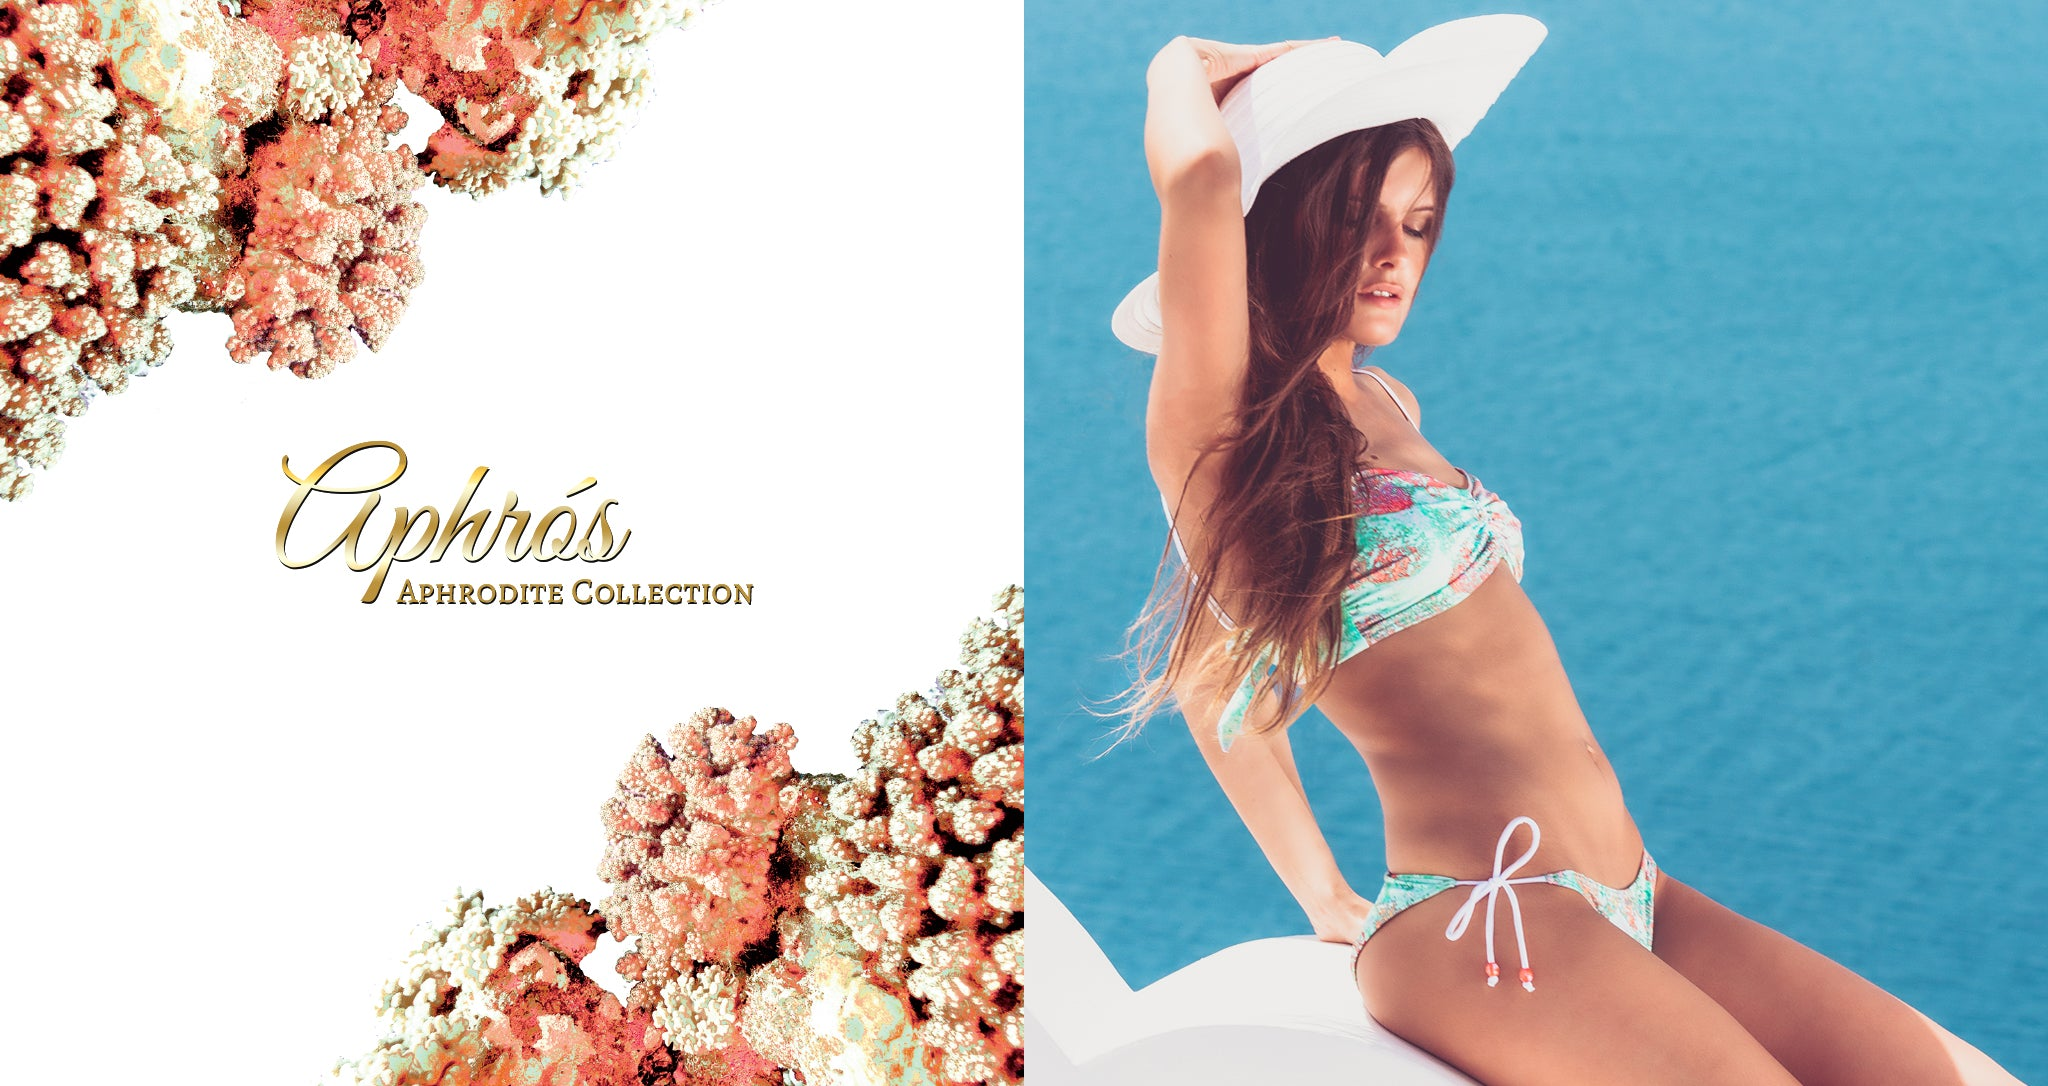 Shop Mer Culture Swimwear | Aphrodite Look 4 | Aphros Bandeau Top and String Tie Bottom Bikini